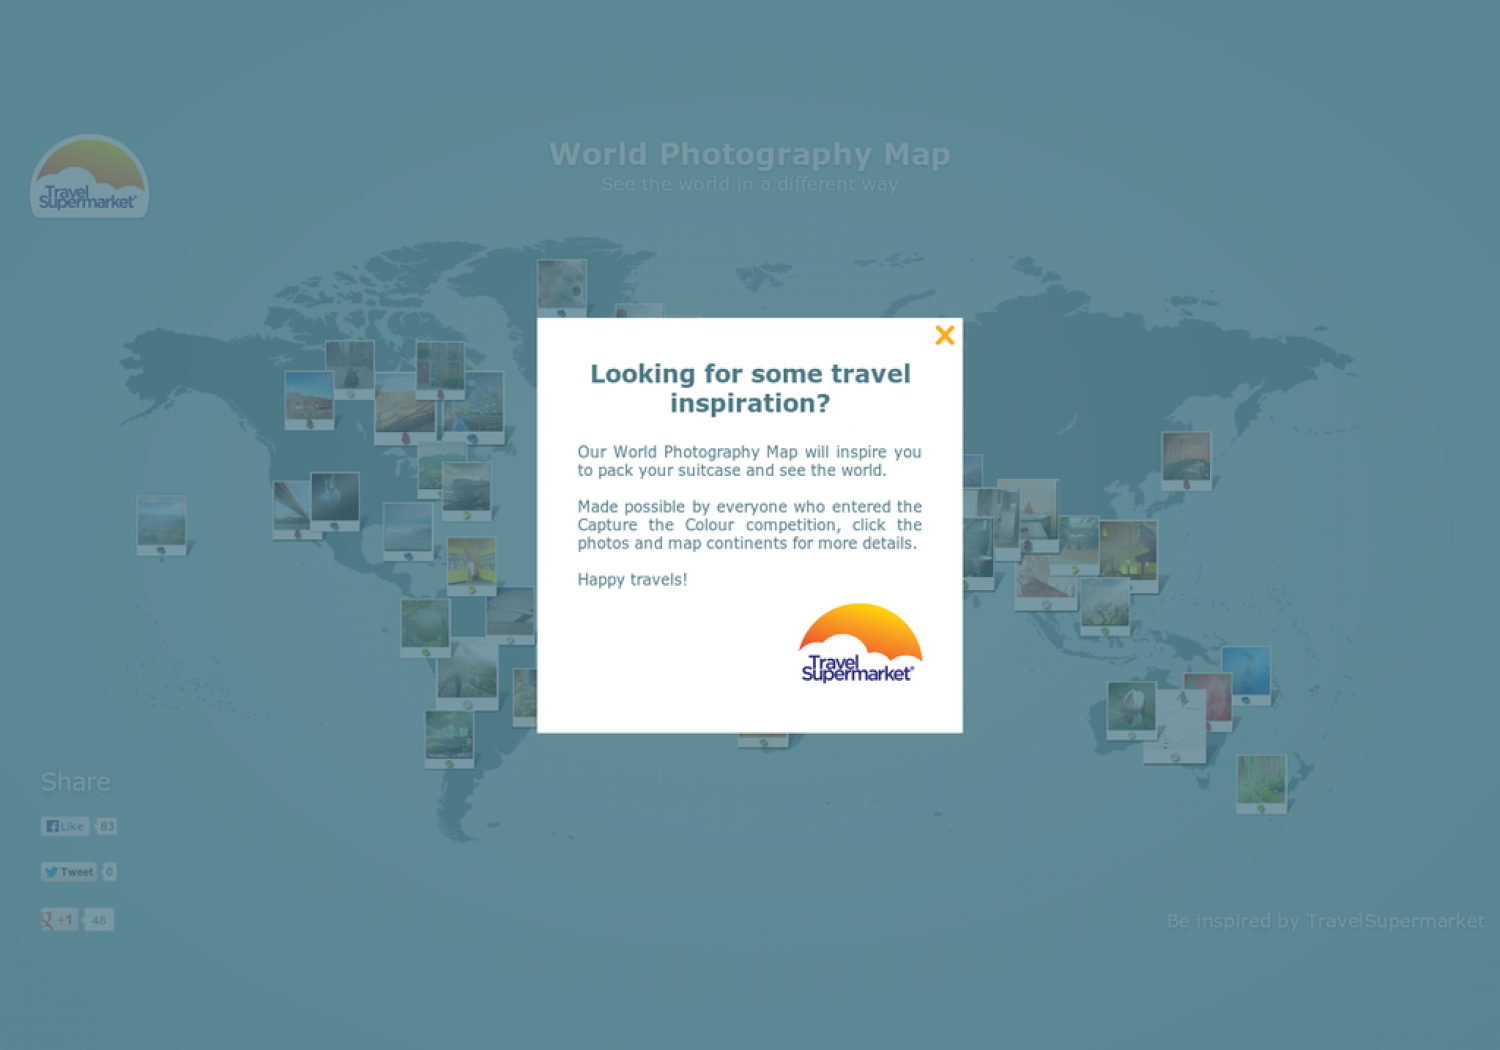 World Photography Map Infographic